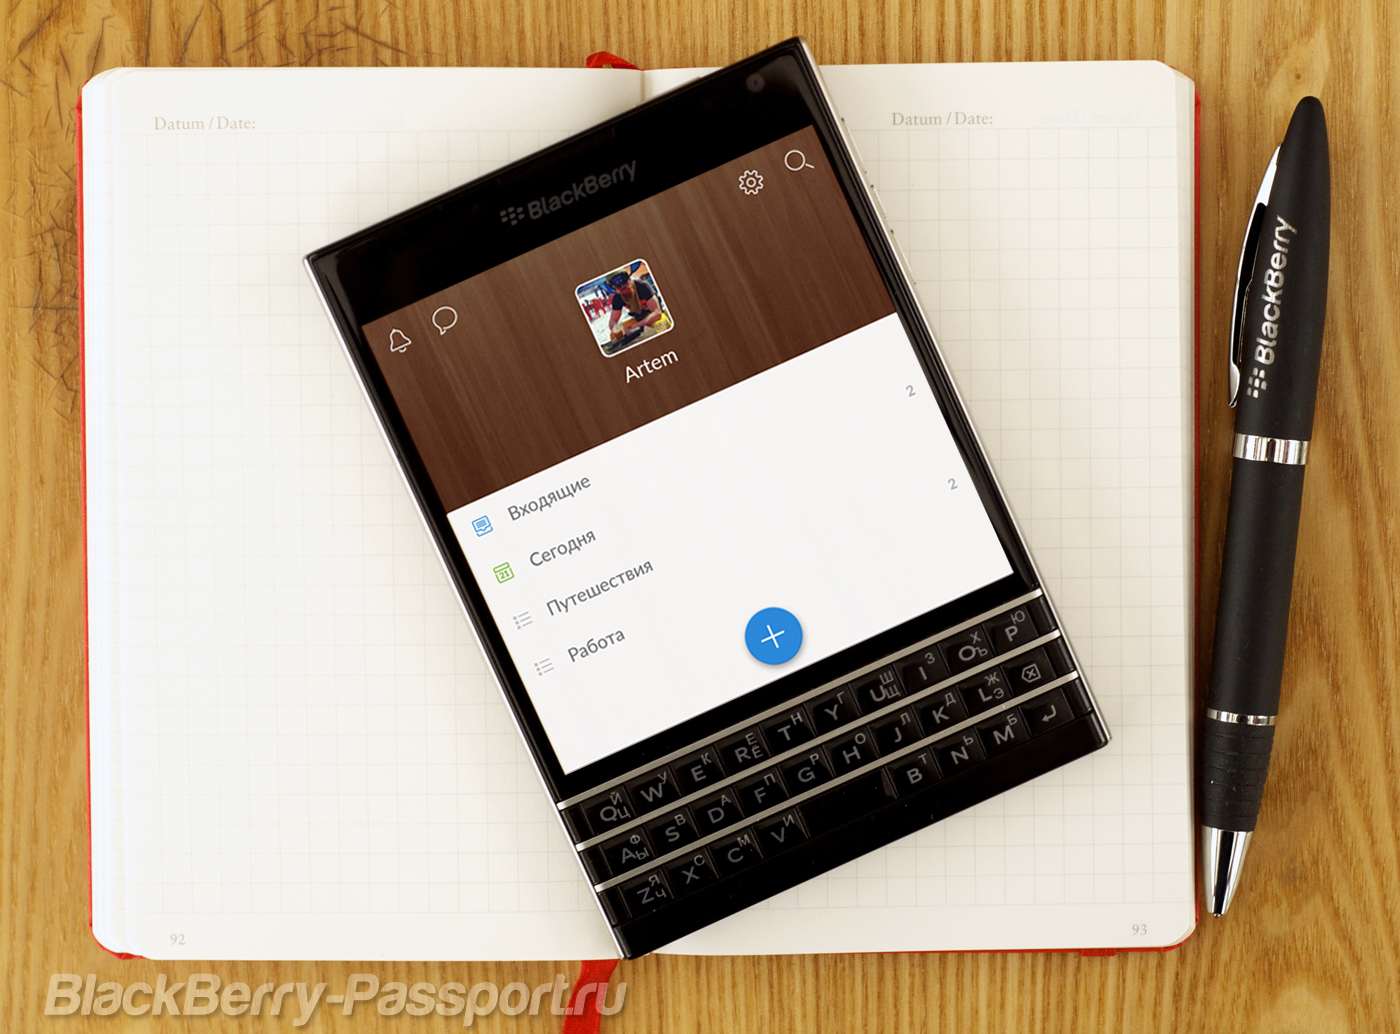 BlackBerry-Passport-Wunderlist-BP